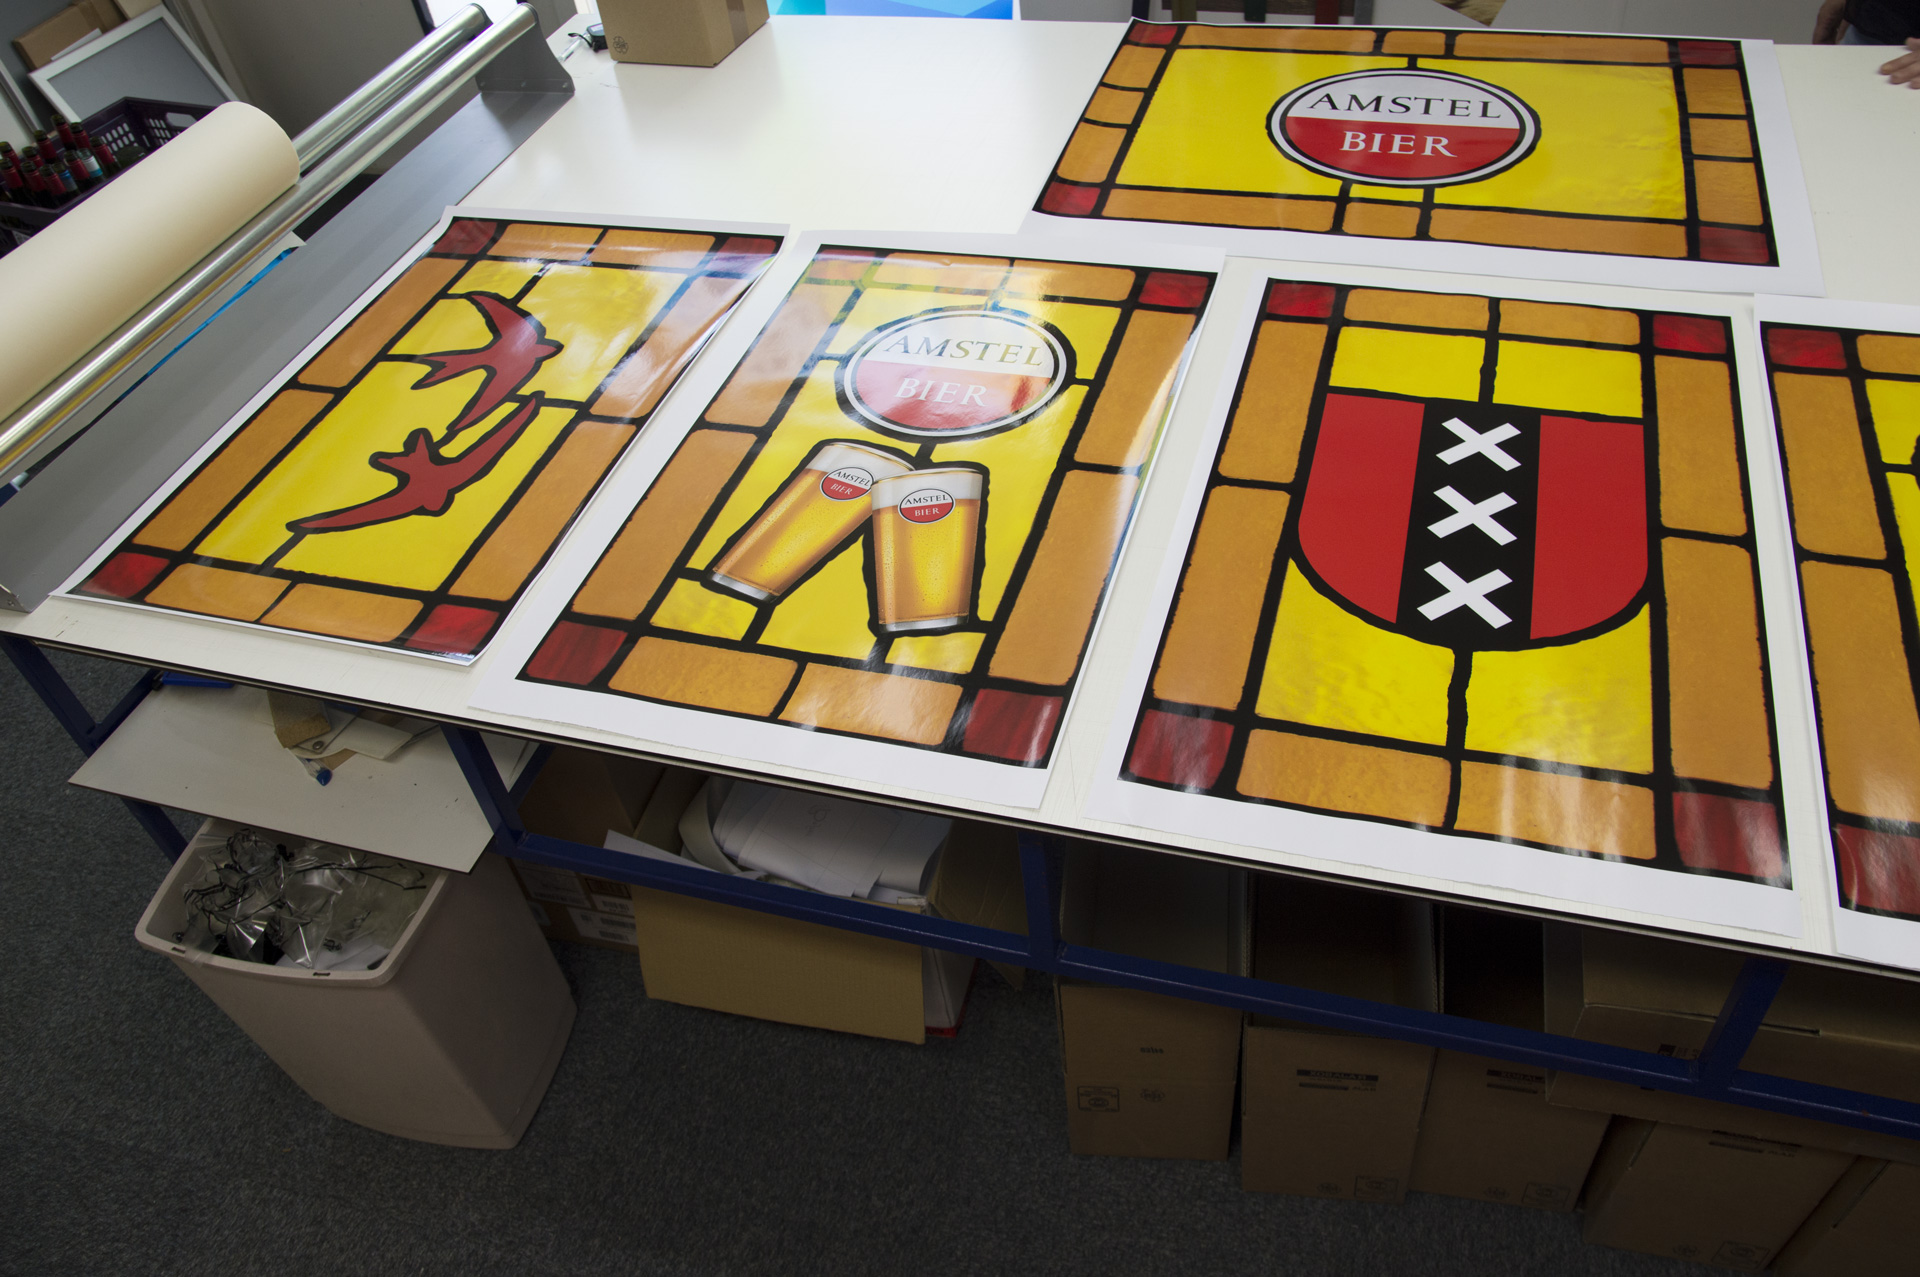 Transparent window film (3) stained glass, custom design, yellow, red